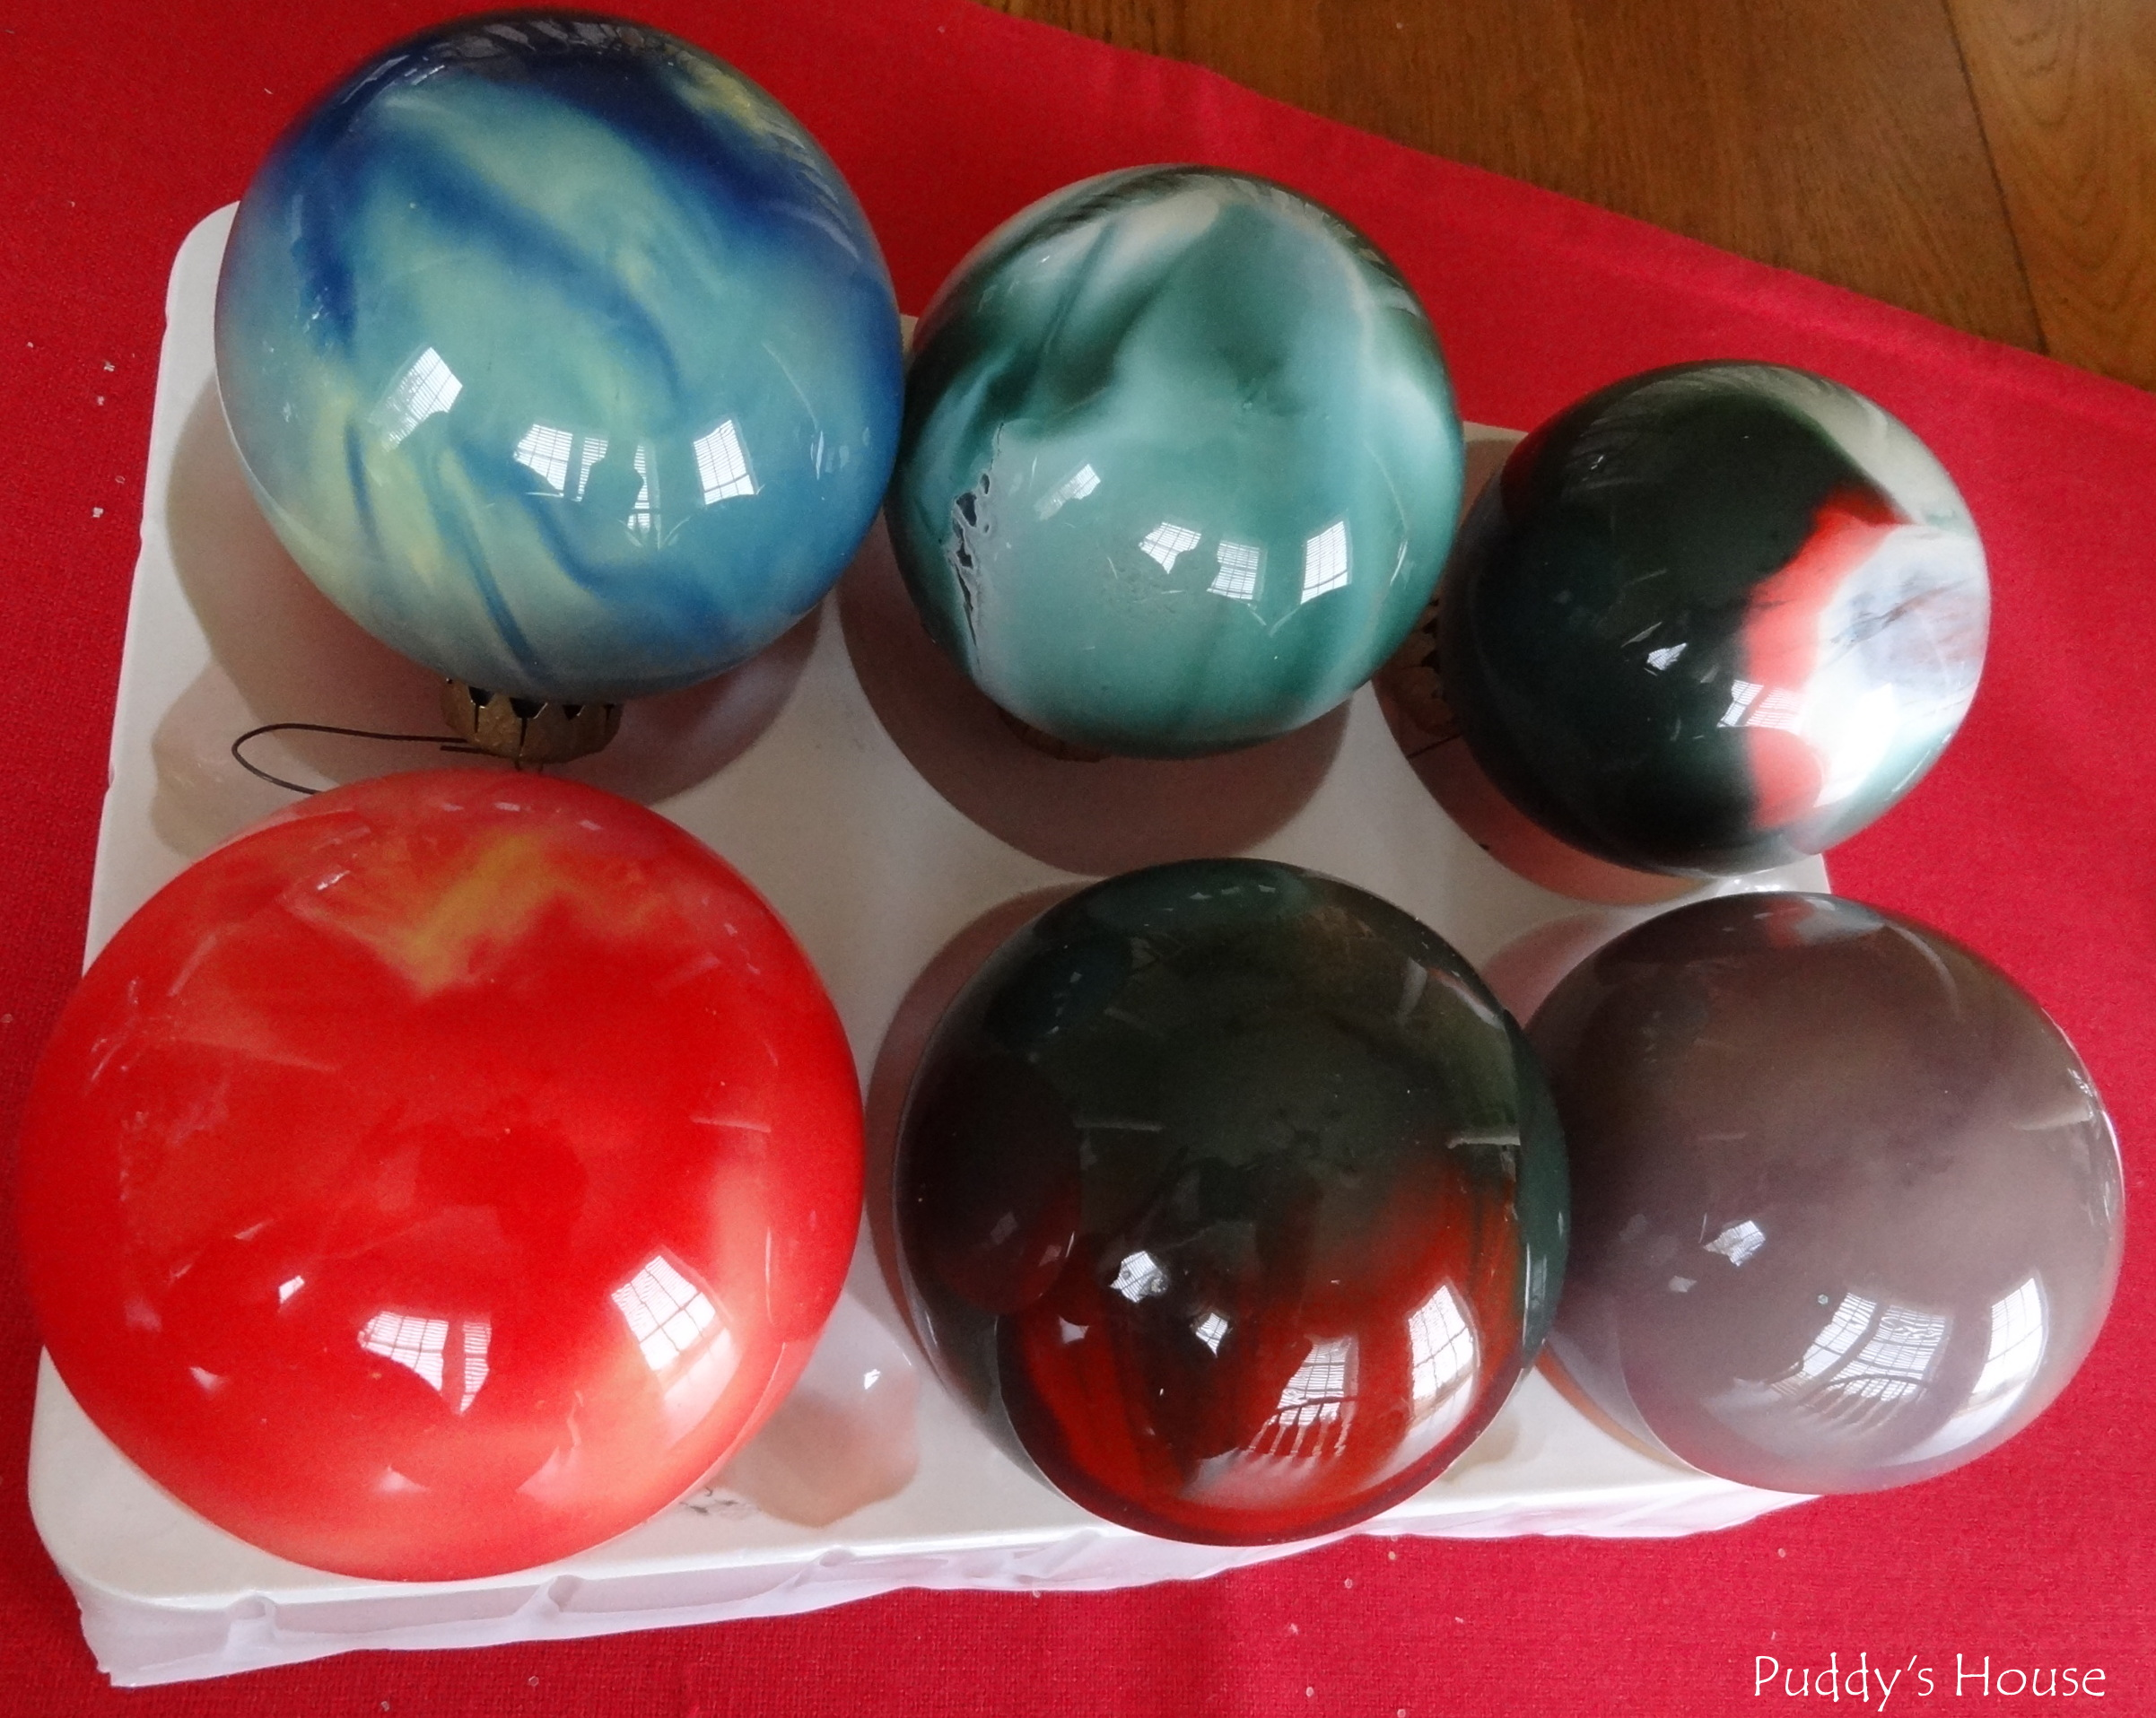 DIY Christmas Ornaments - Swirled paint in glass balls